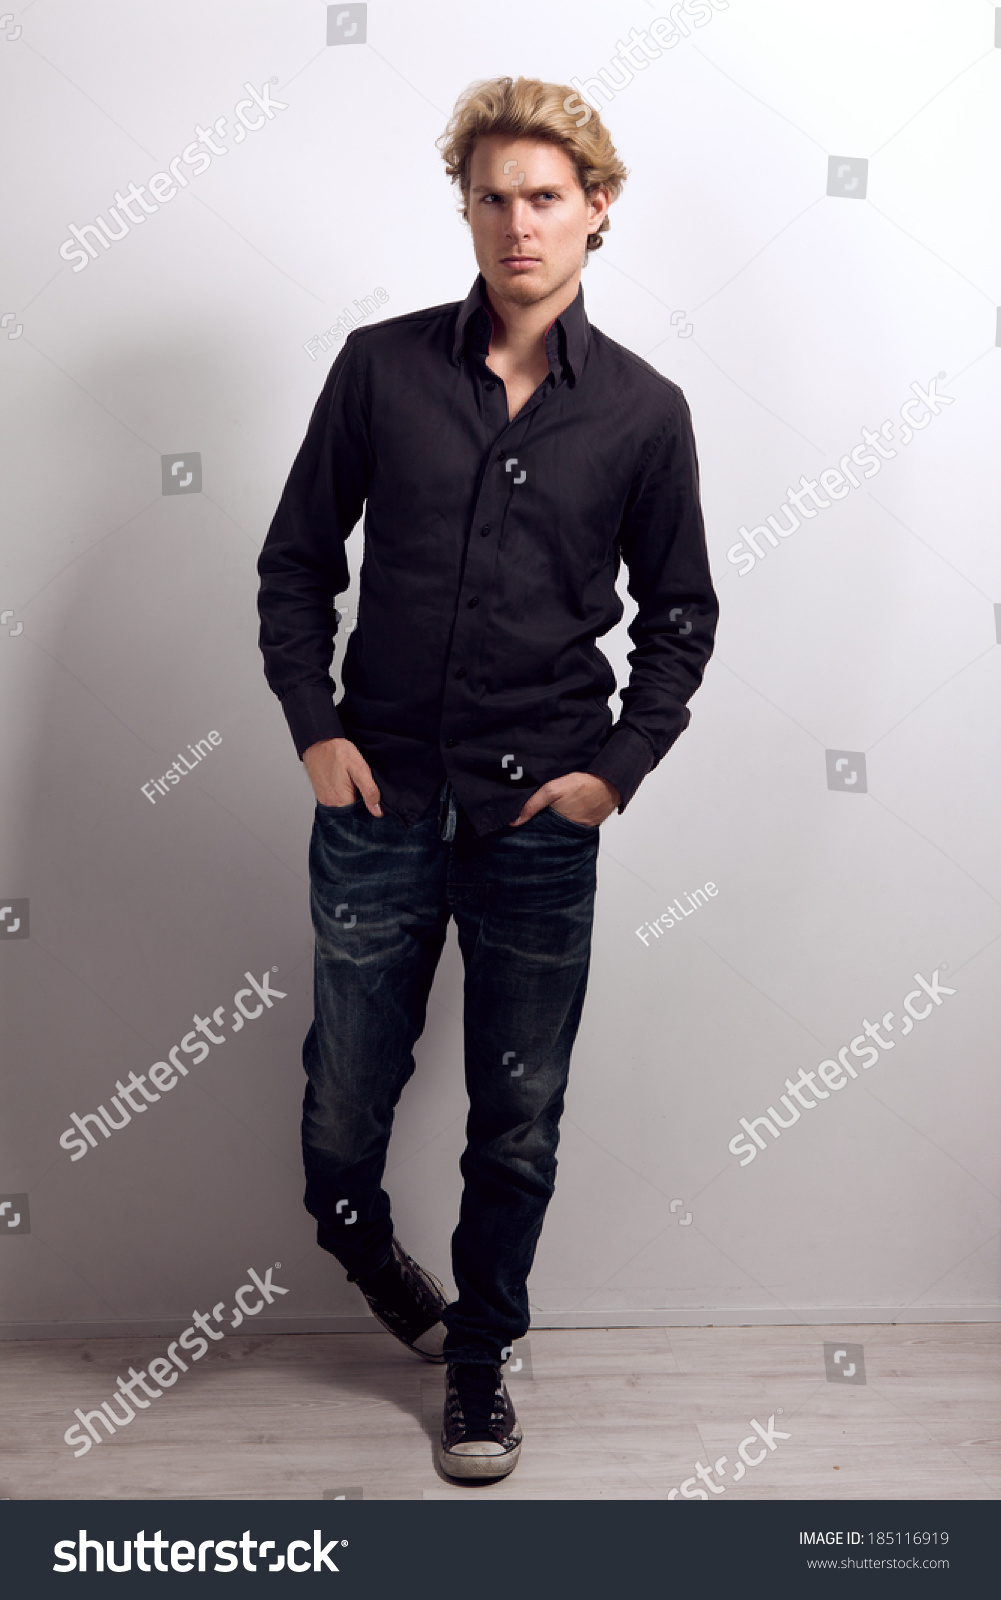 Attractive male with blonde hair dressed in black shirt Black shirt blue jeans